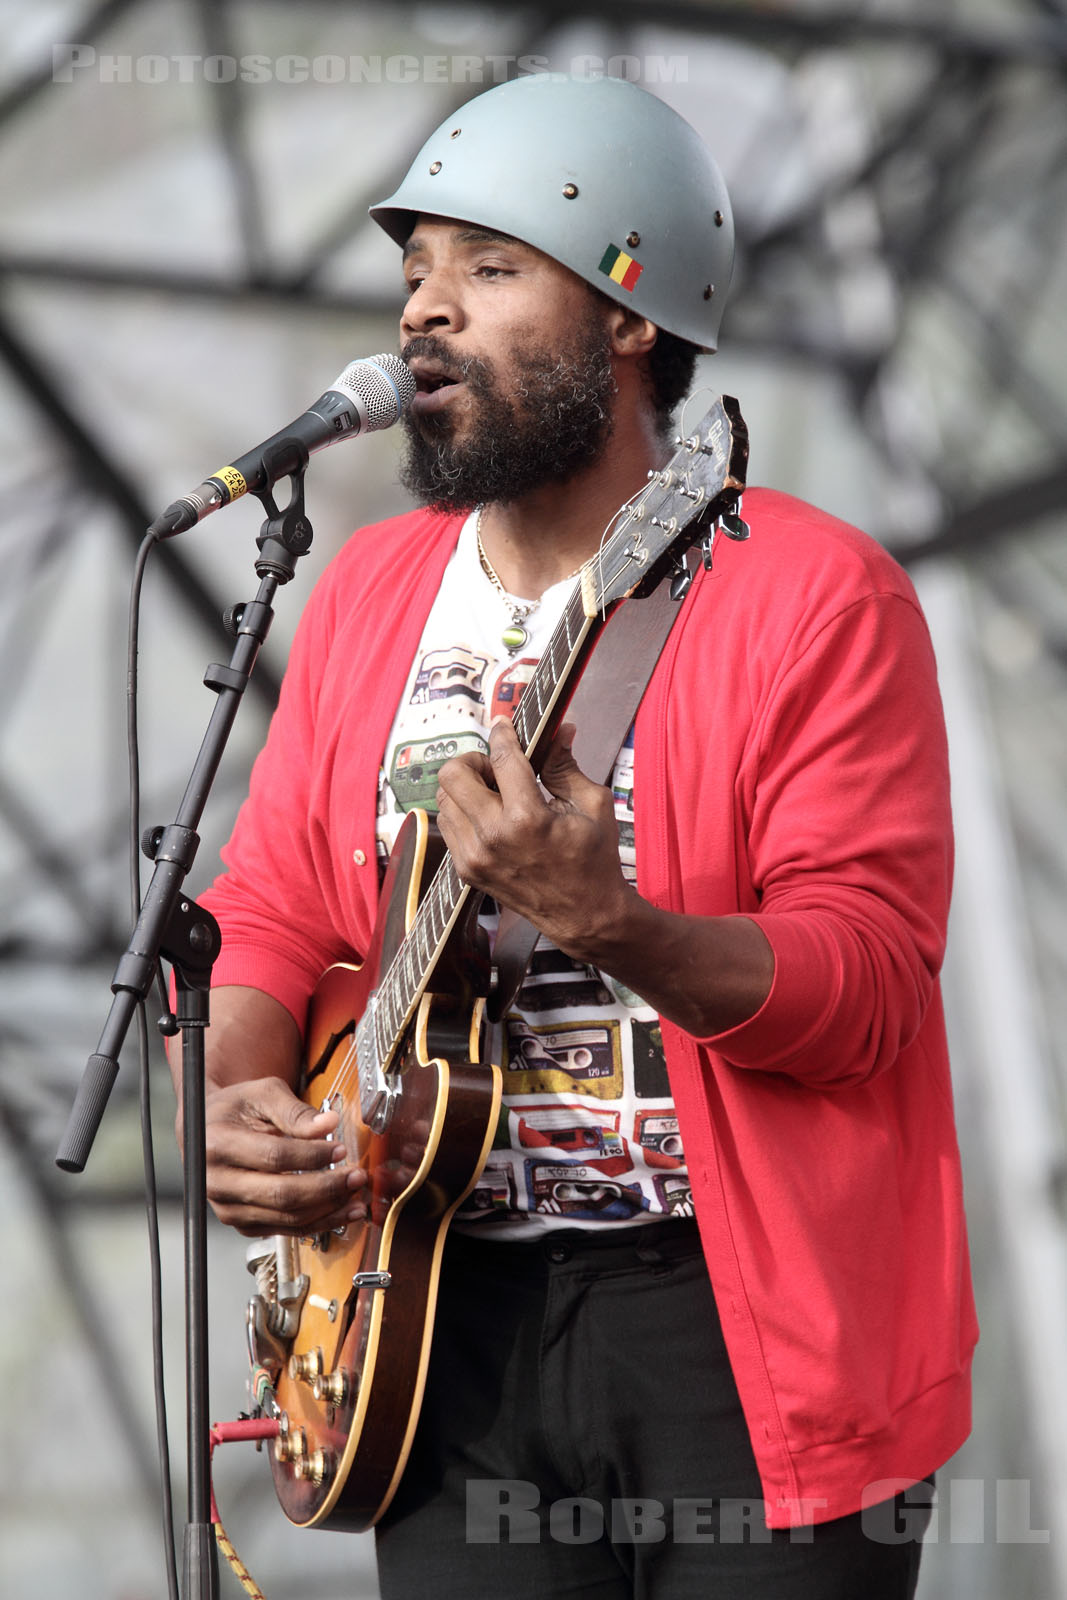 CODY CHESNUTT - 2012-09-16 - PARIS - Parc de Bagatelle